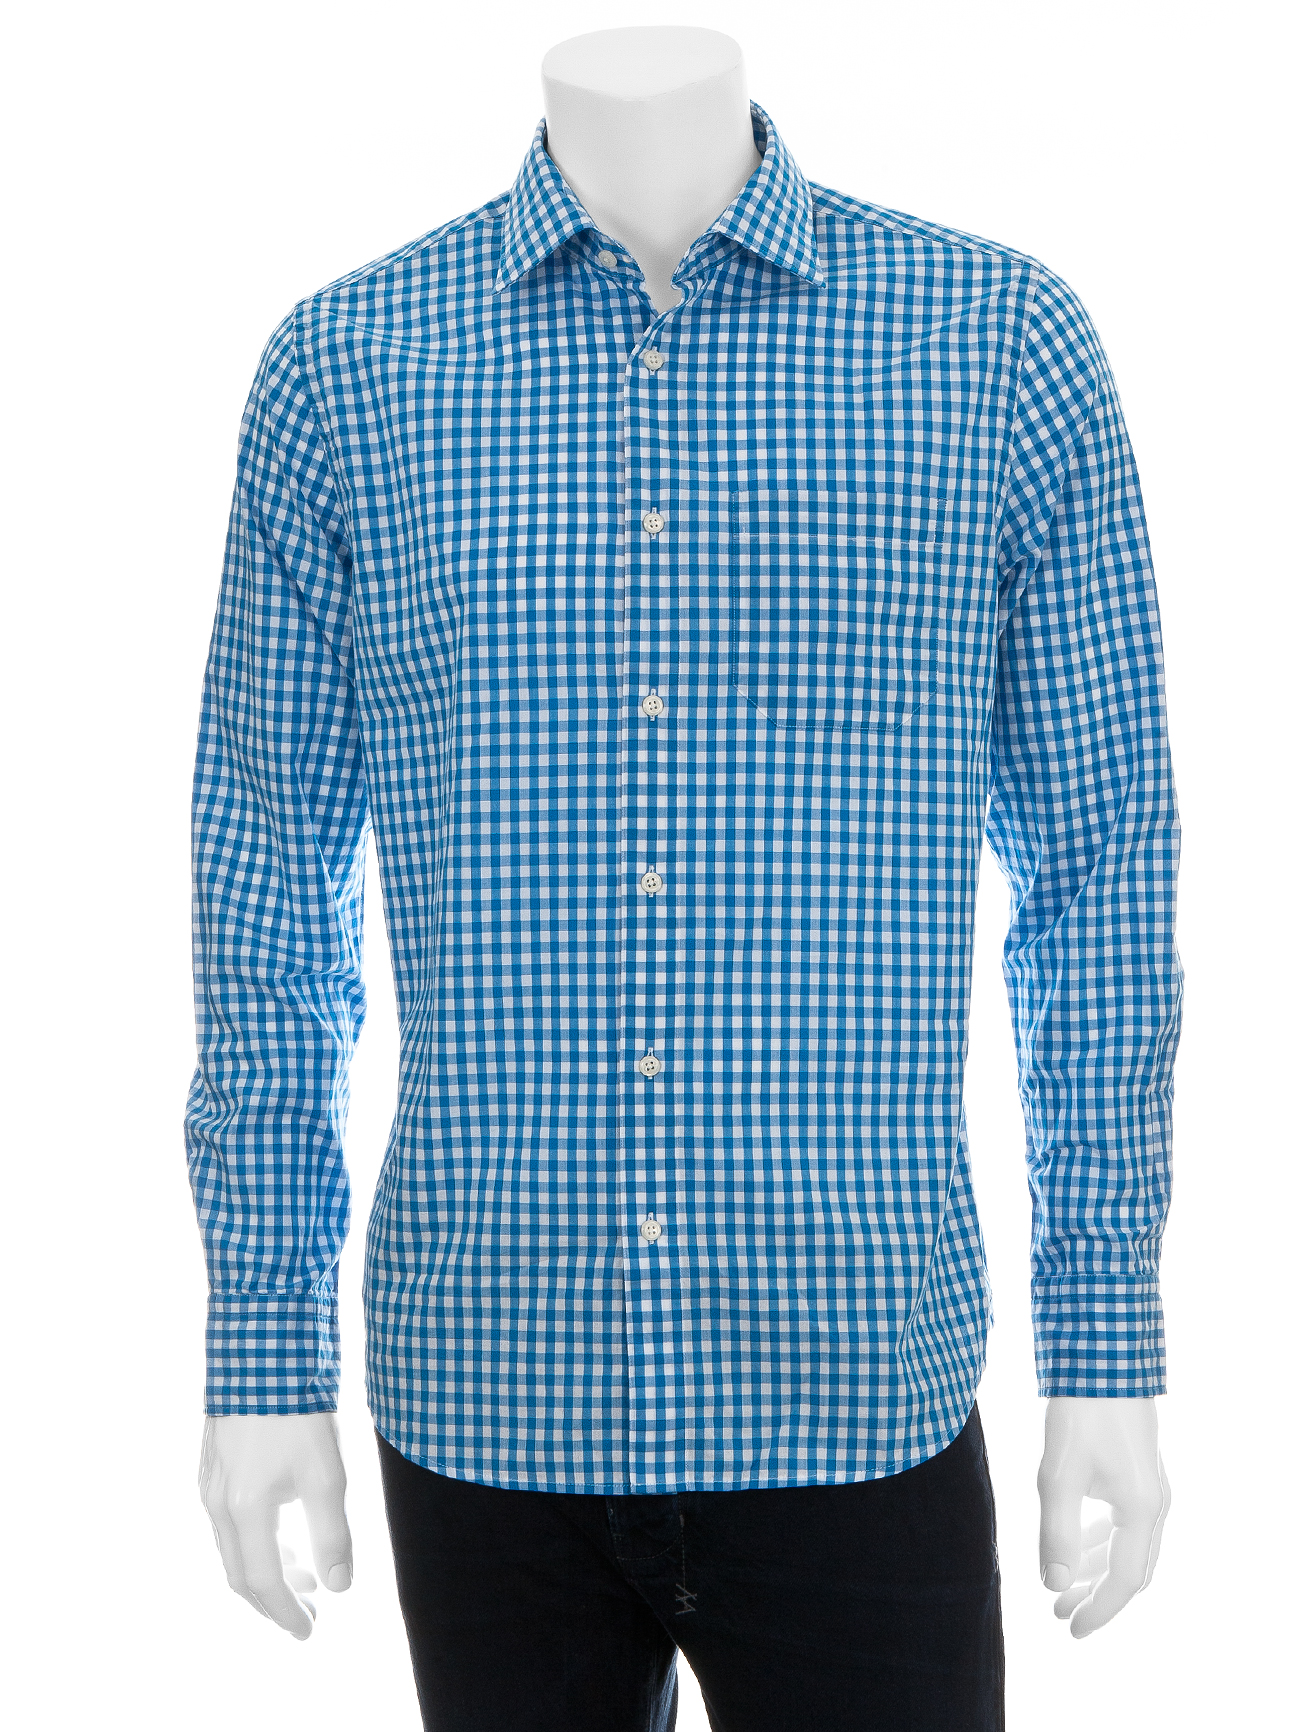 Scp gingham shirt turquoise in blue for men turquoise for Mens blue gingham shirt